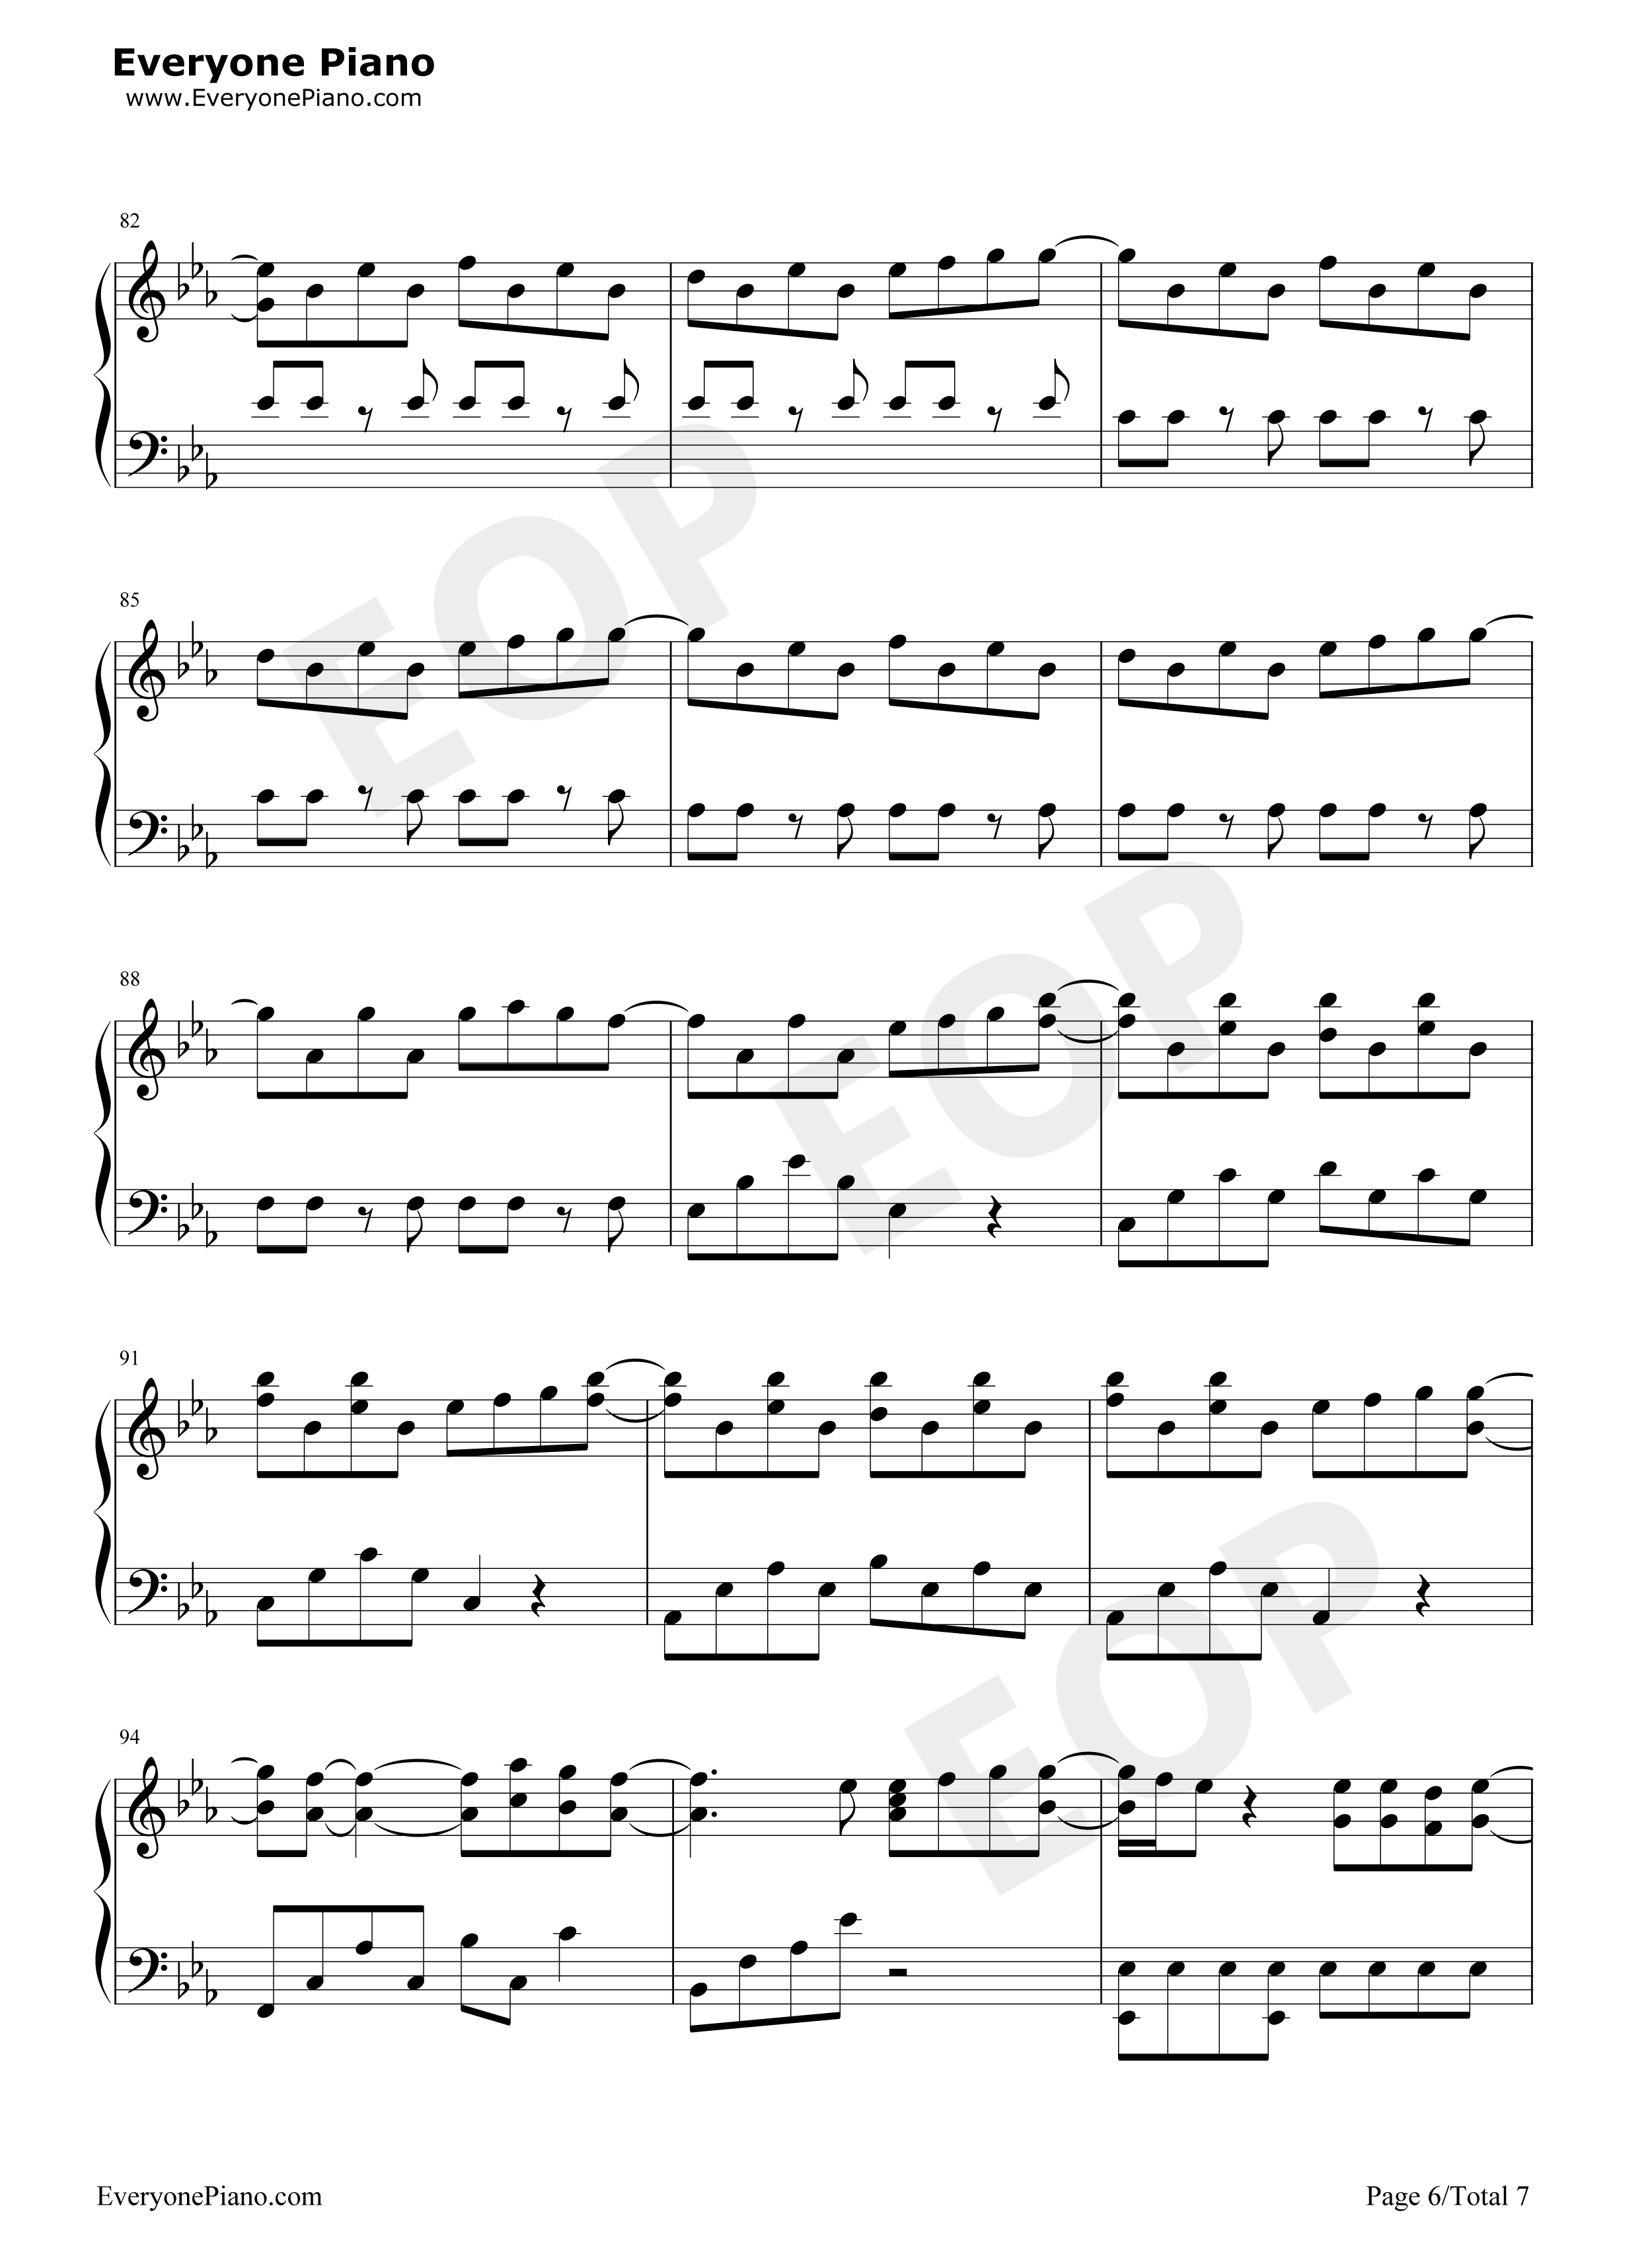 Peter pan exo stave preview 6 free piano sheet music piano chords listen now print sheet peter pan exo stave preview 6 hexwebz Images